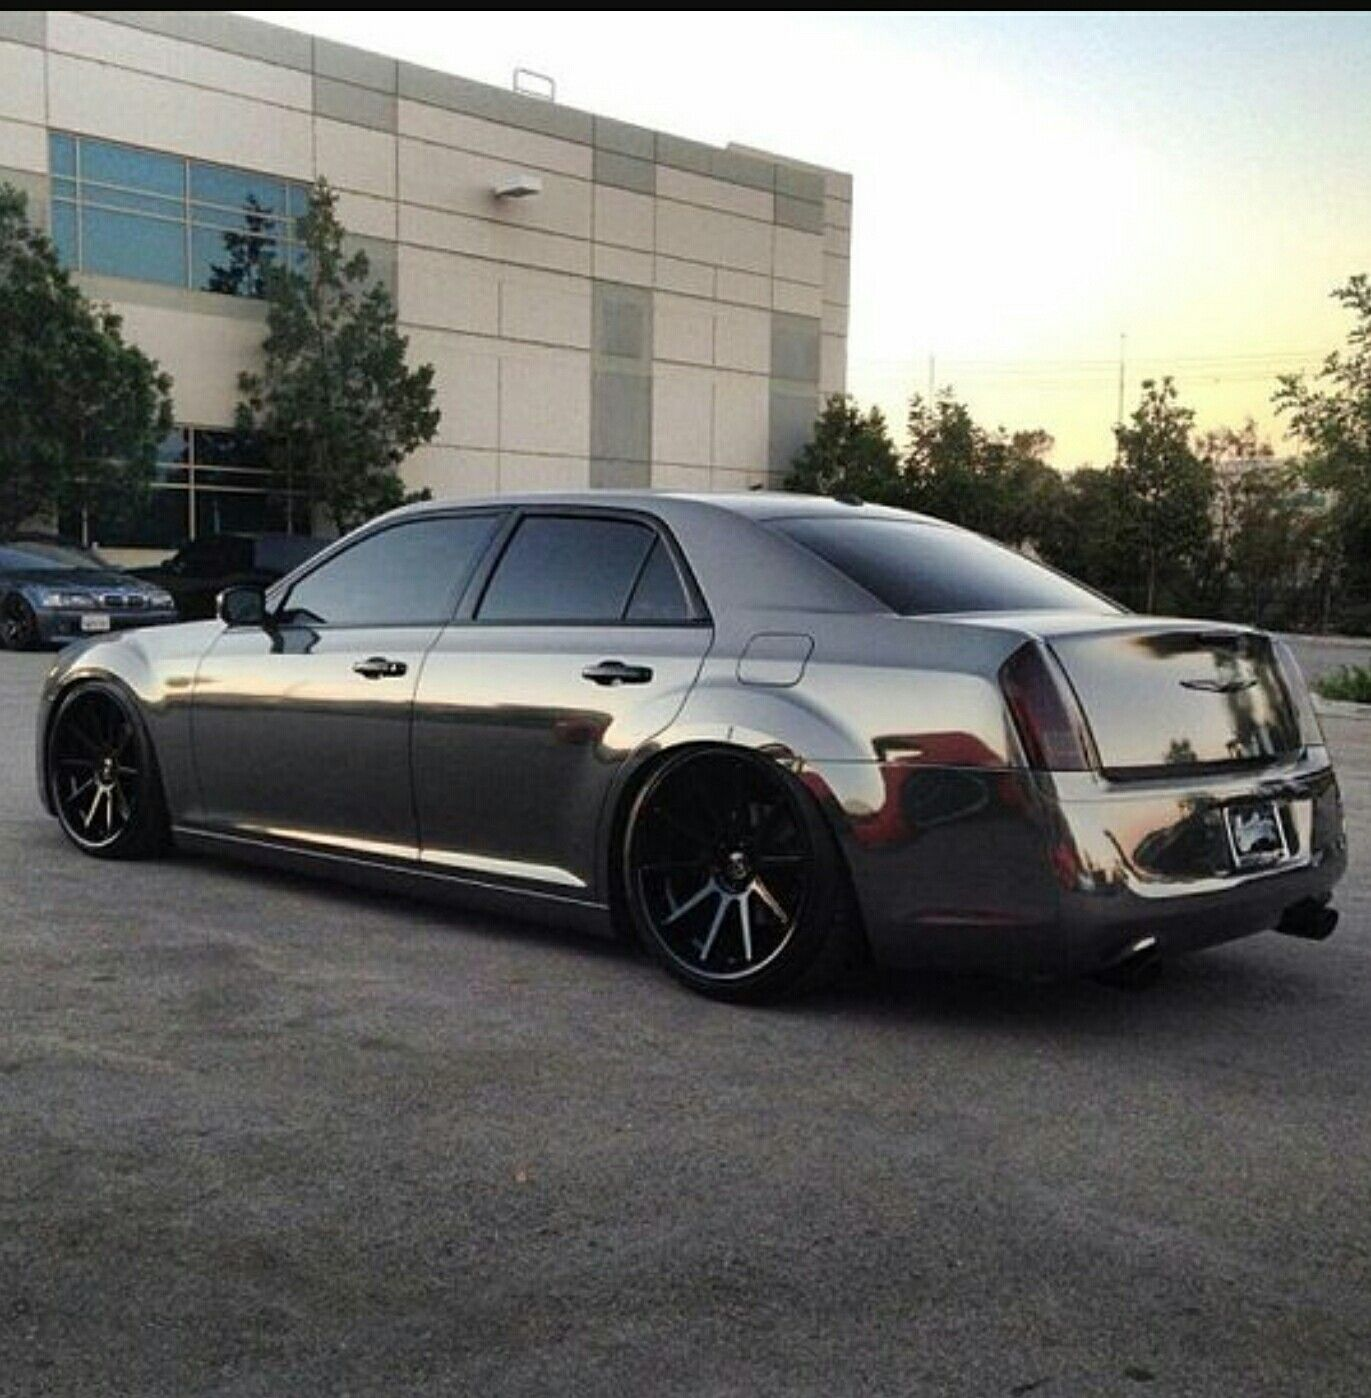 """160 Best Images About Chrysler 300 On Pinterest: Pin By Sabrina Myers On Dream Car """"Chrystler""""300 Ideas"""